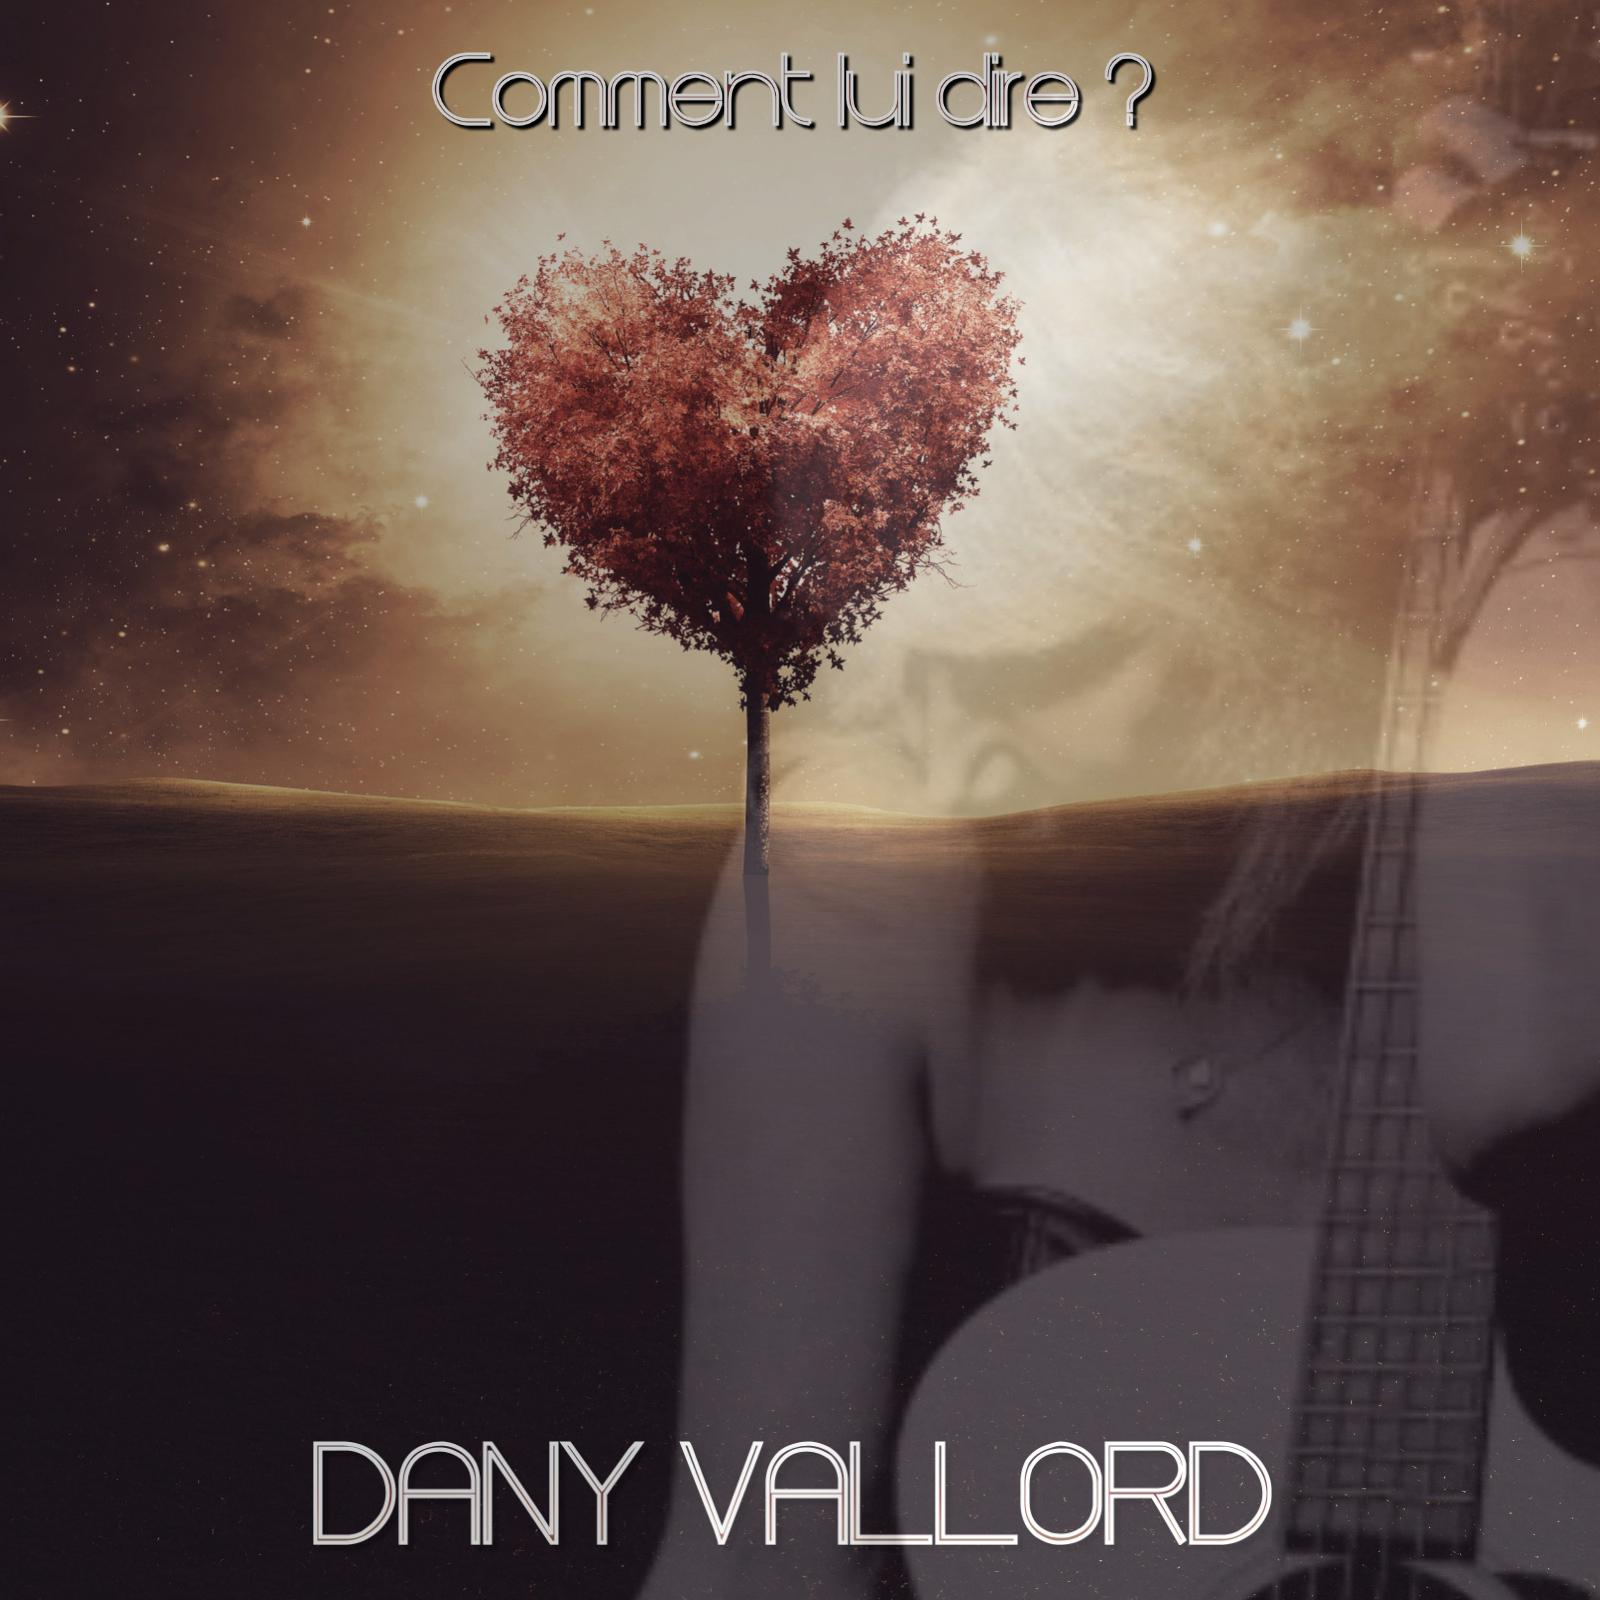 Dany Vallord - Comment lui dire ?